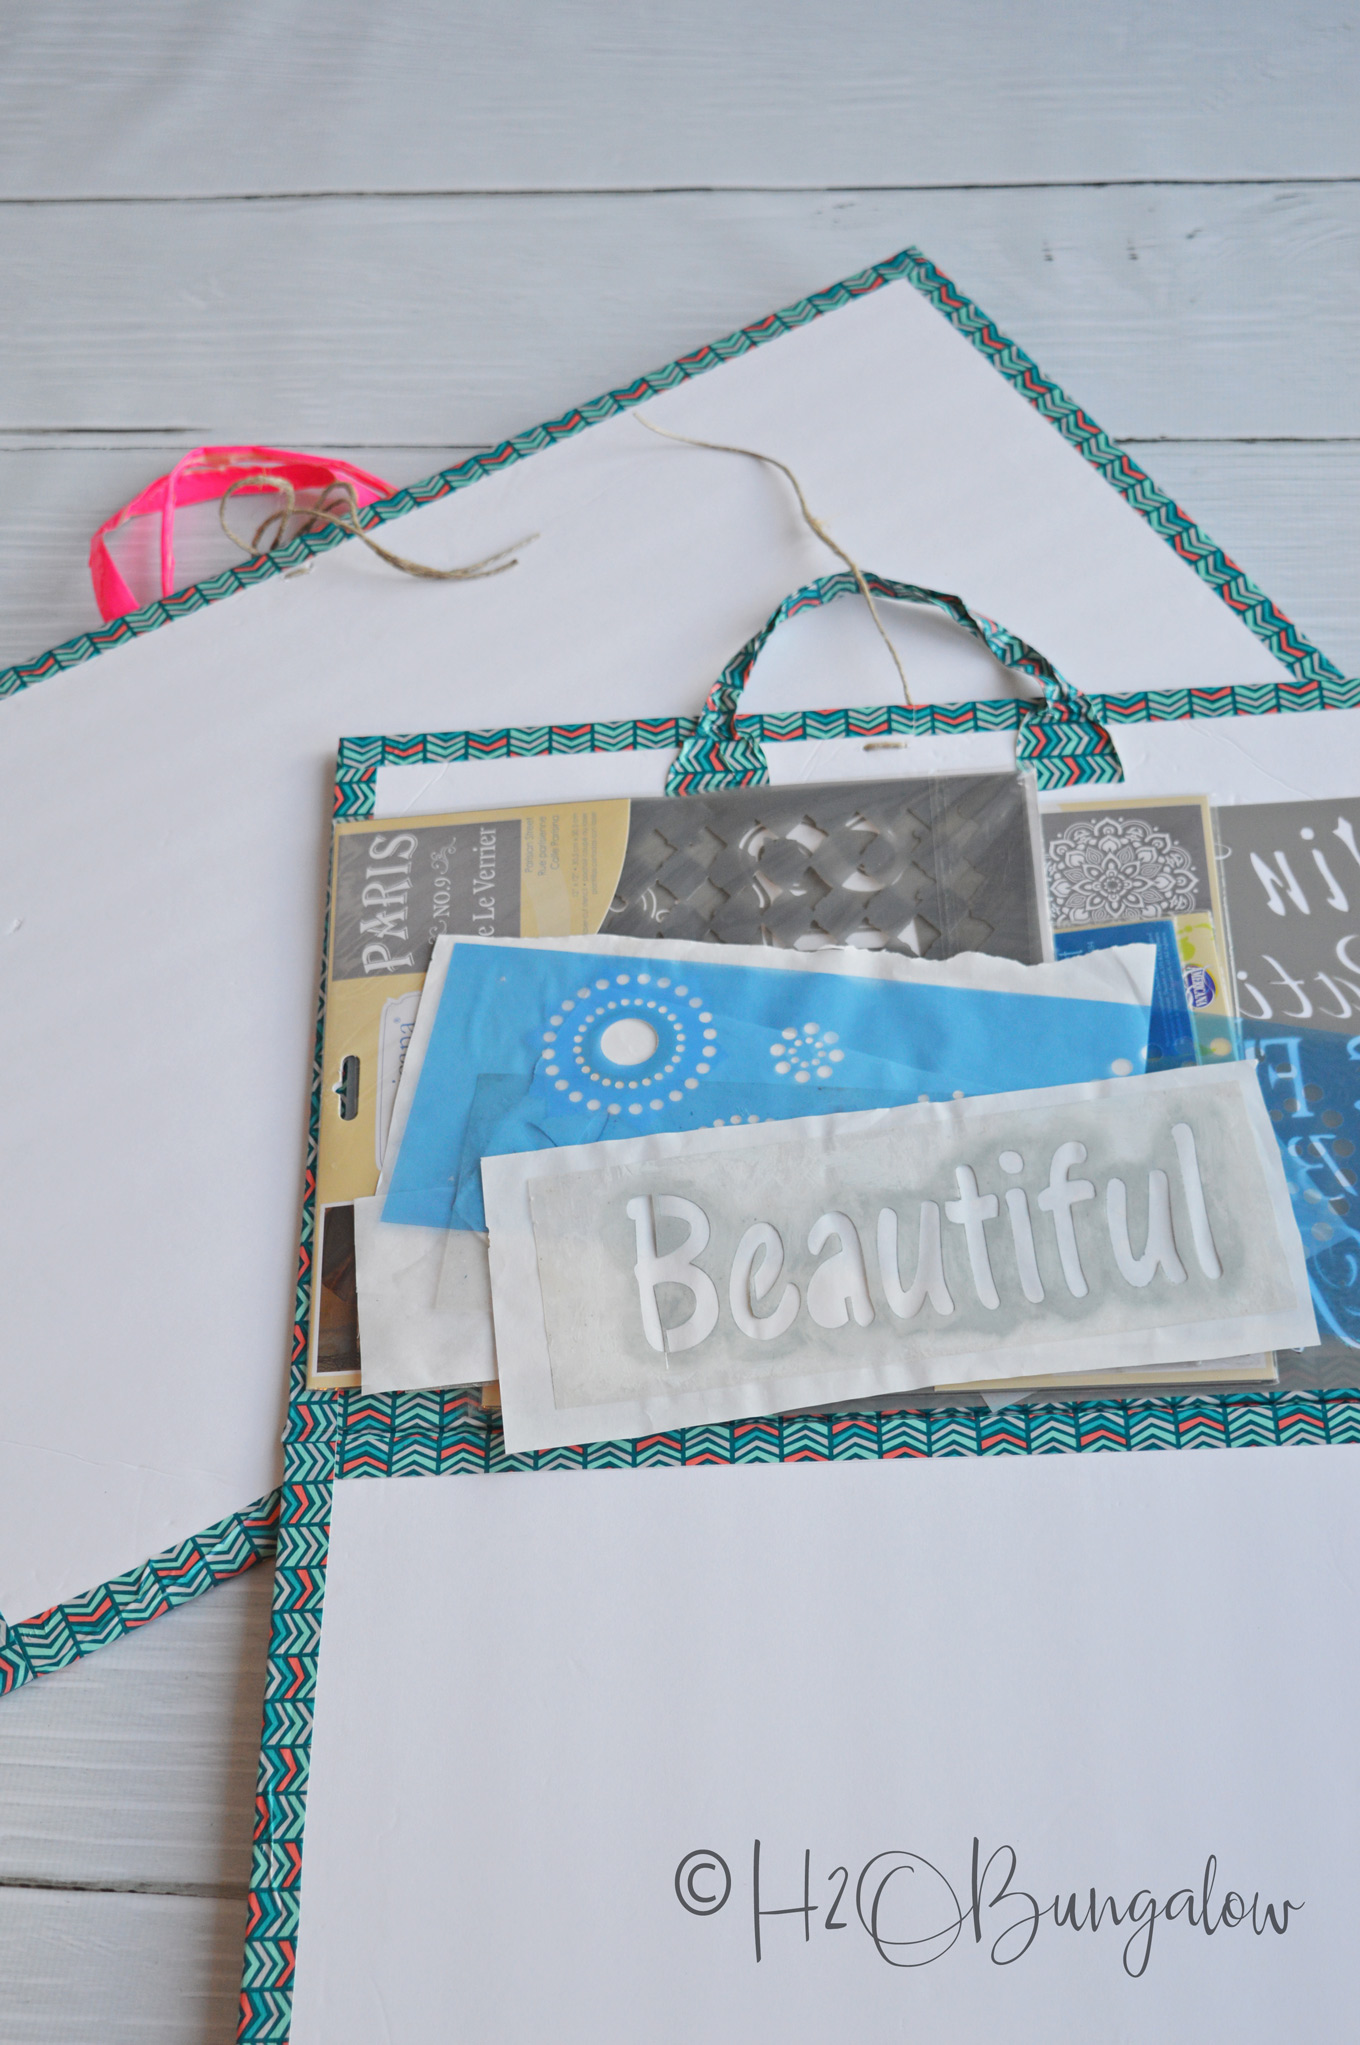 I needed to figure out how to store and organize stencils without taking up a lot of room in my office. I made DIY stencil storage protectors that keep my large and small stencils from getting bent or crushed. What a great stencil storing idea! Easy tutorial with step by step instructions on how to make stencil storage